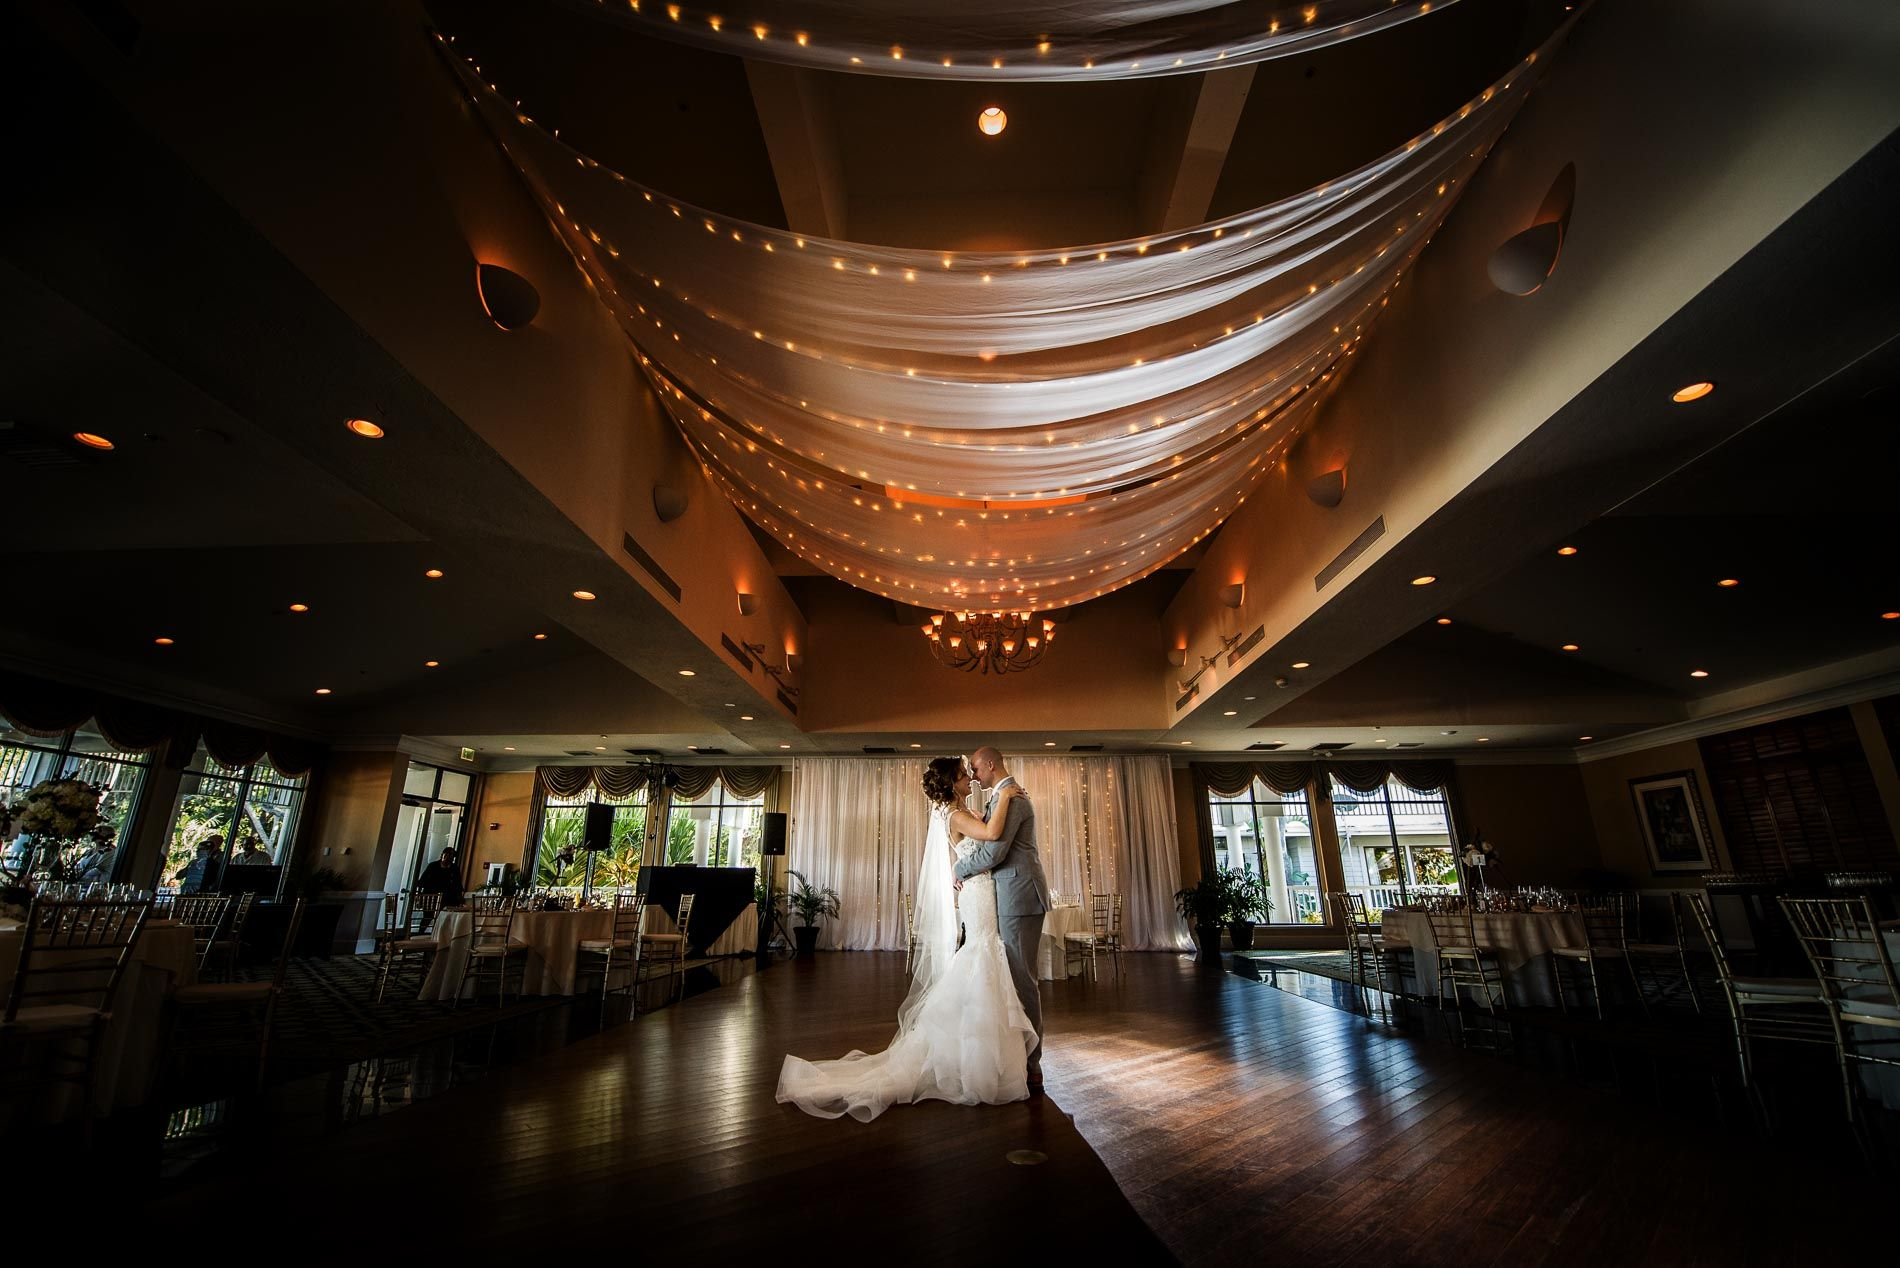 Tatyana And Ethan Dancing Together In Their Reception